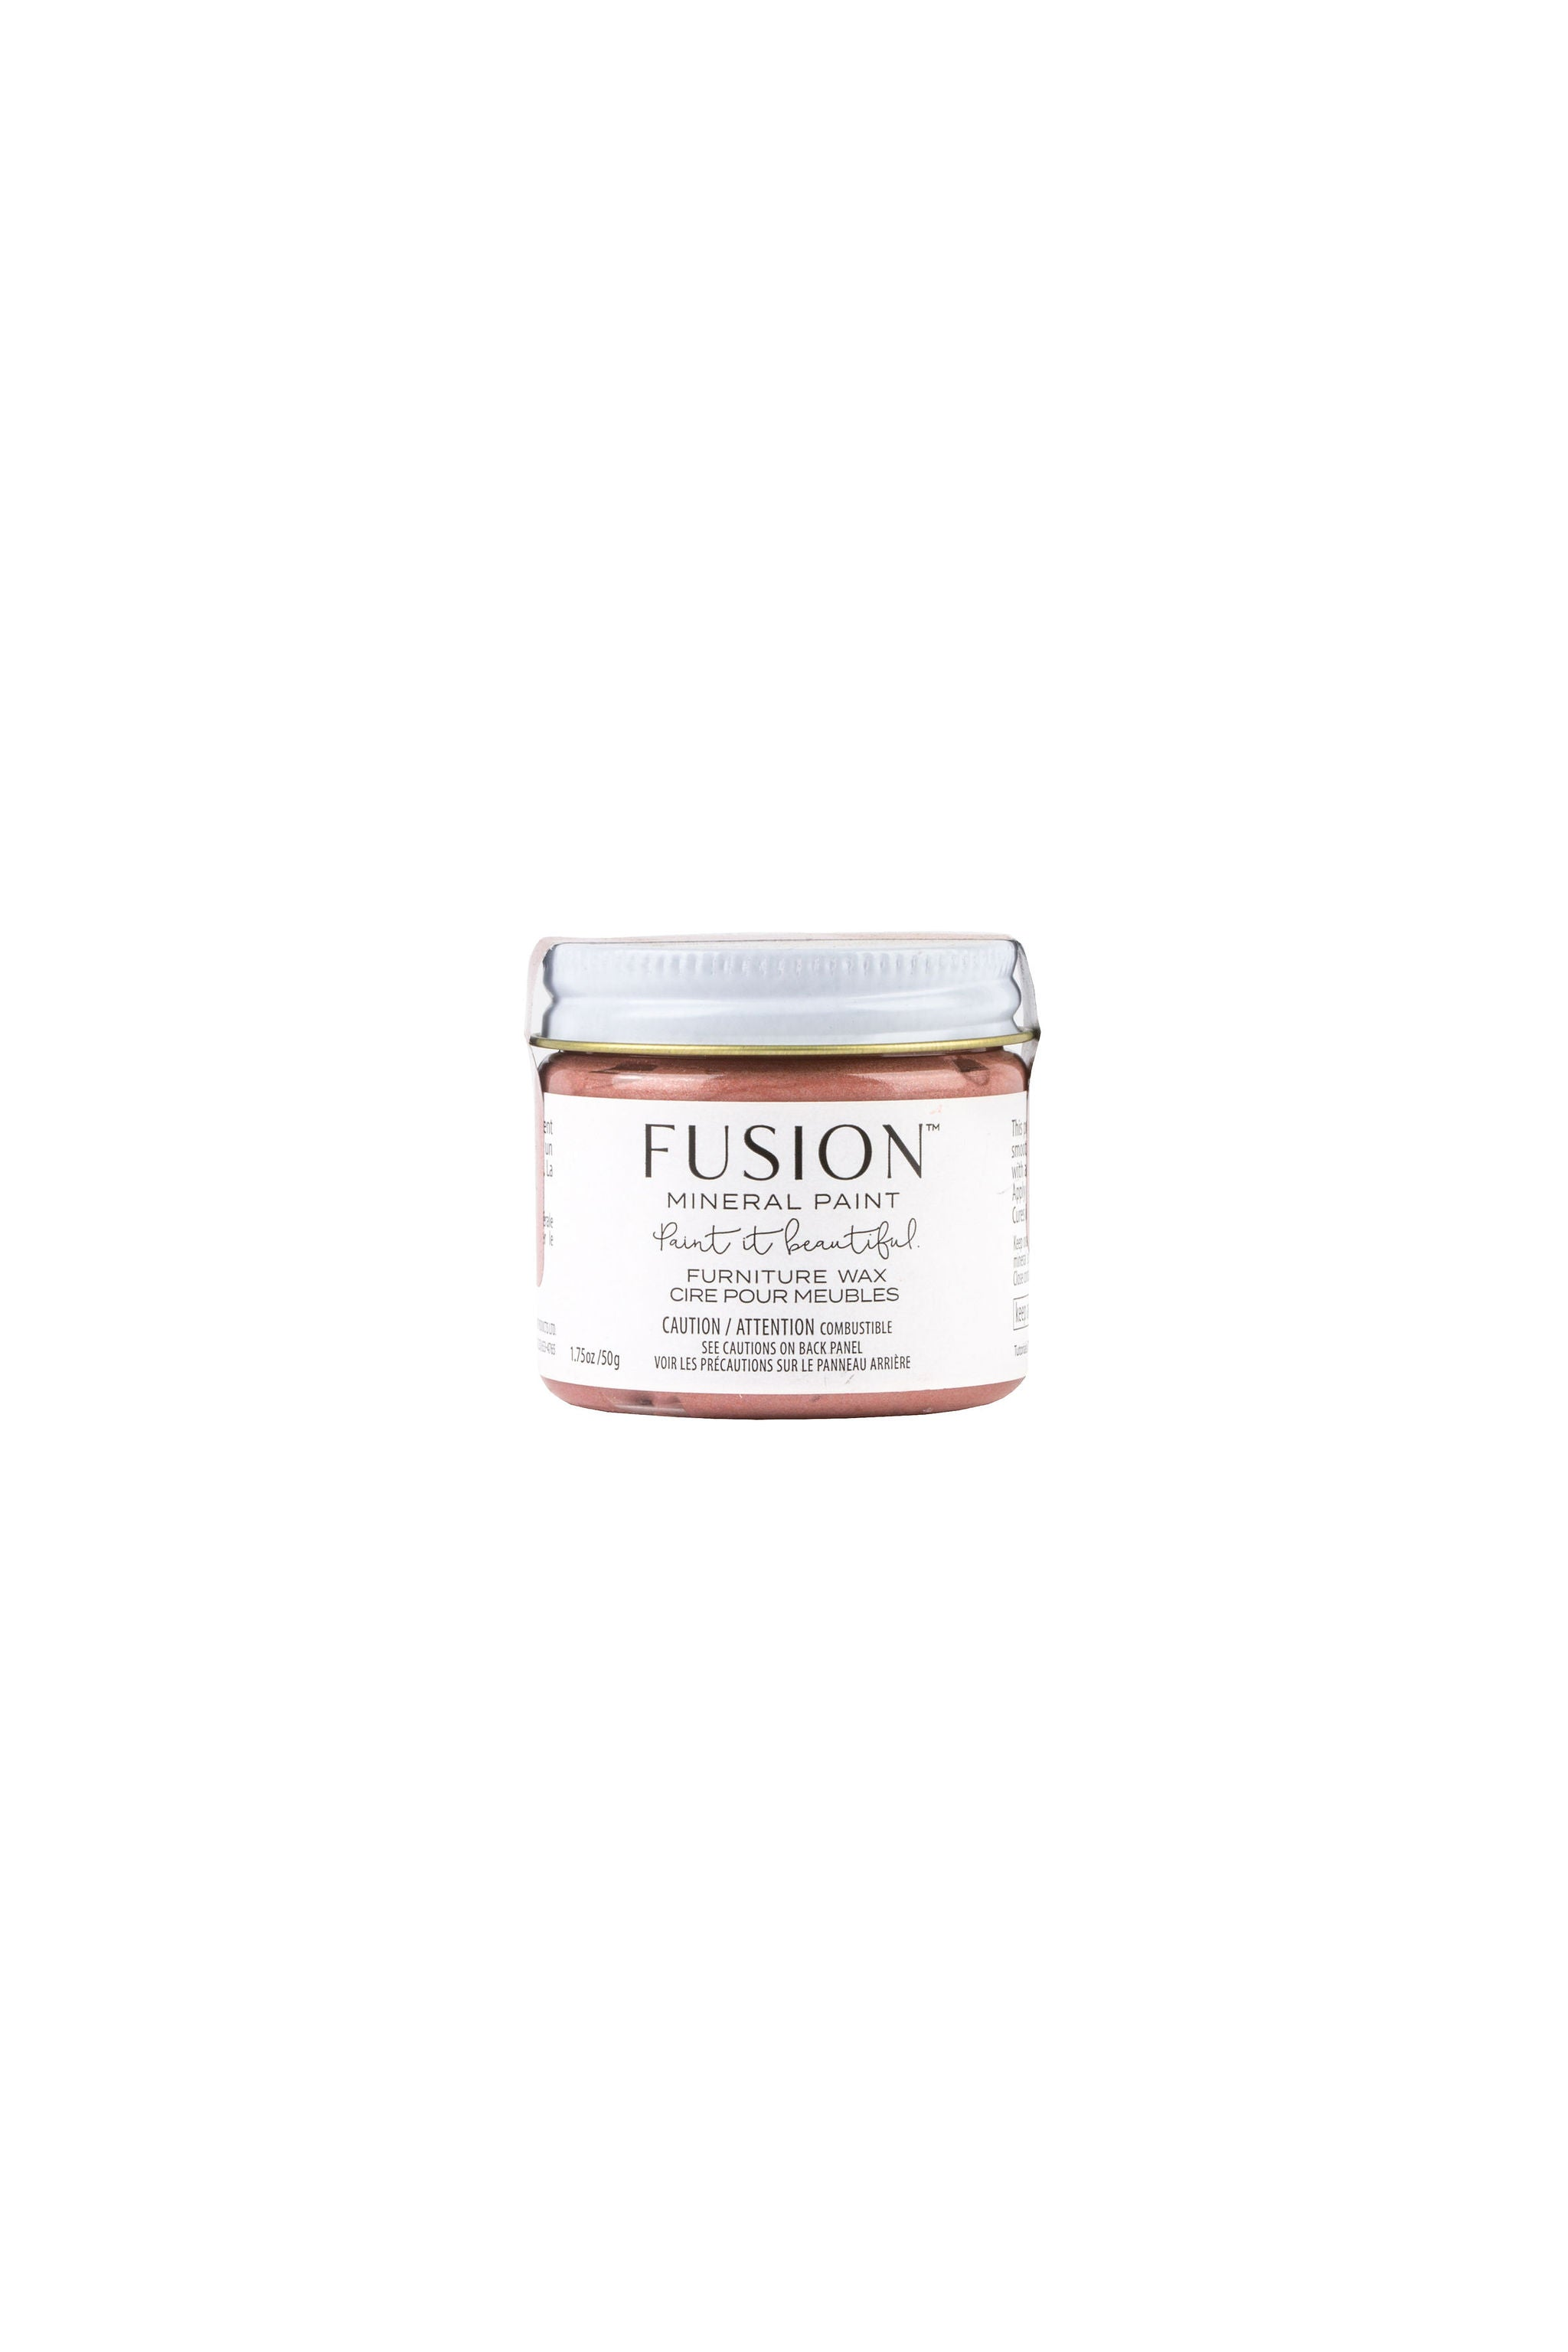 Rose Gold Metallic Wax - Fusion Mineral Paint - Where to Buy Online - Dear Olympia - Flate Rate US Shipping